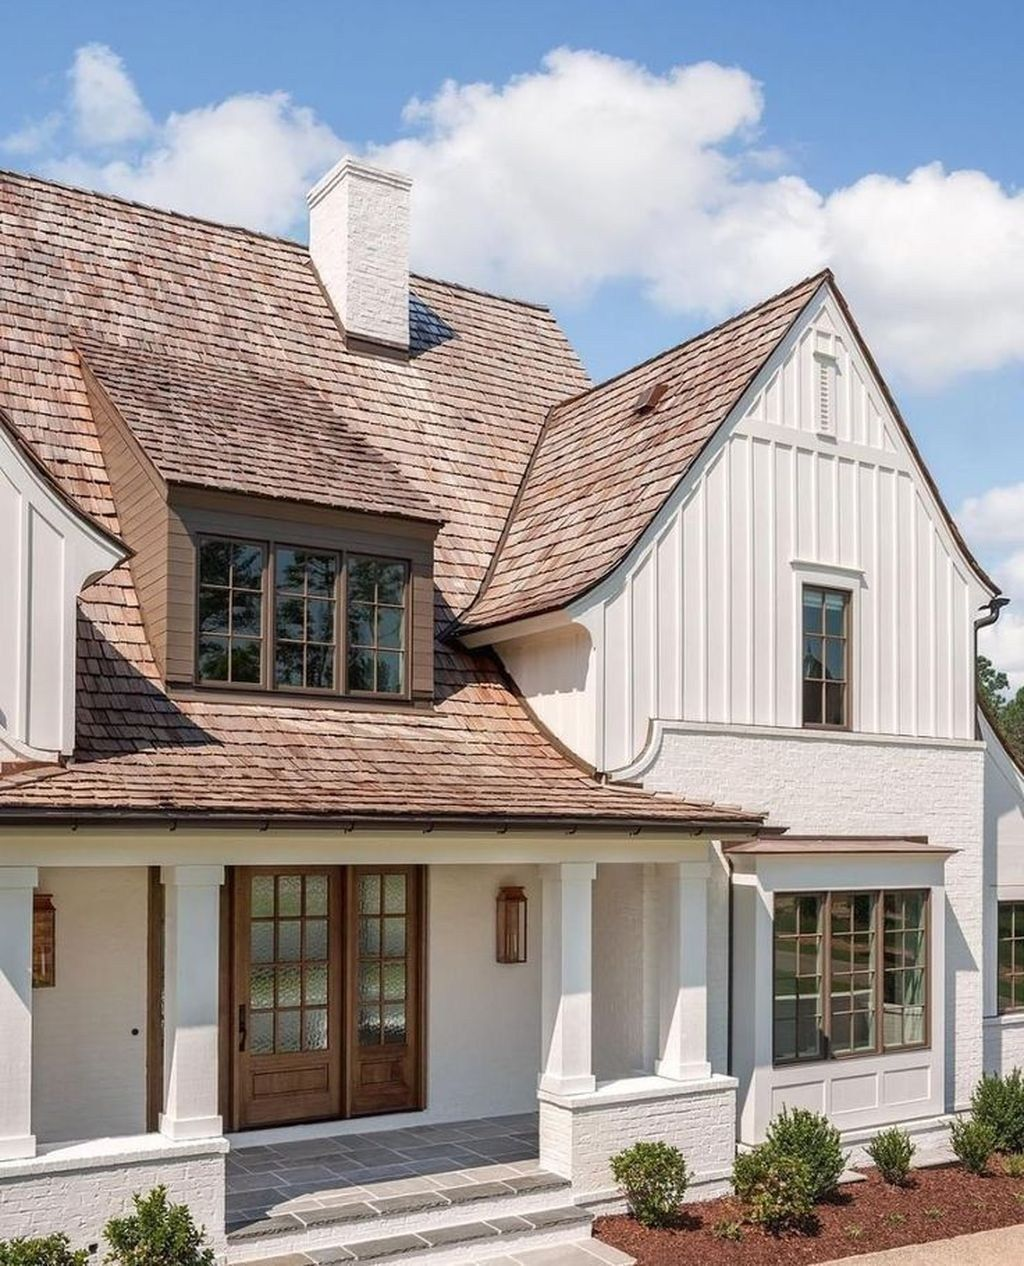 Astonishing Exterior Paint Colors Ideas For House With